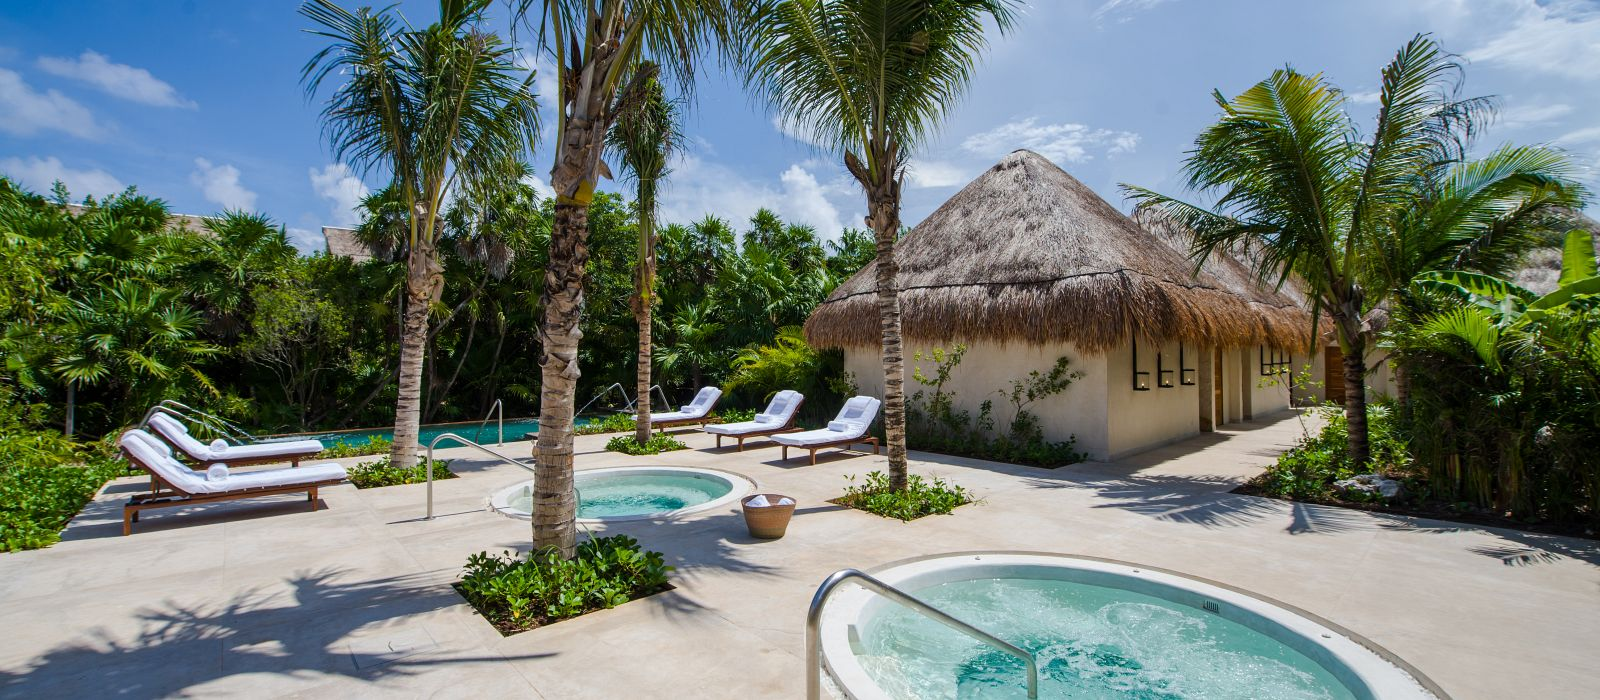 Chable Maroma Mexico jacuzzi